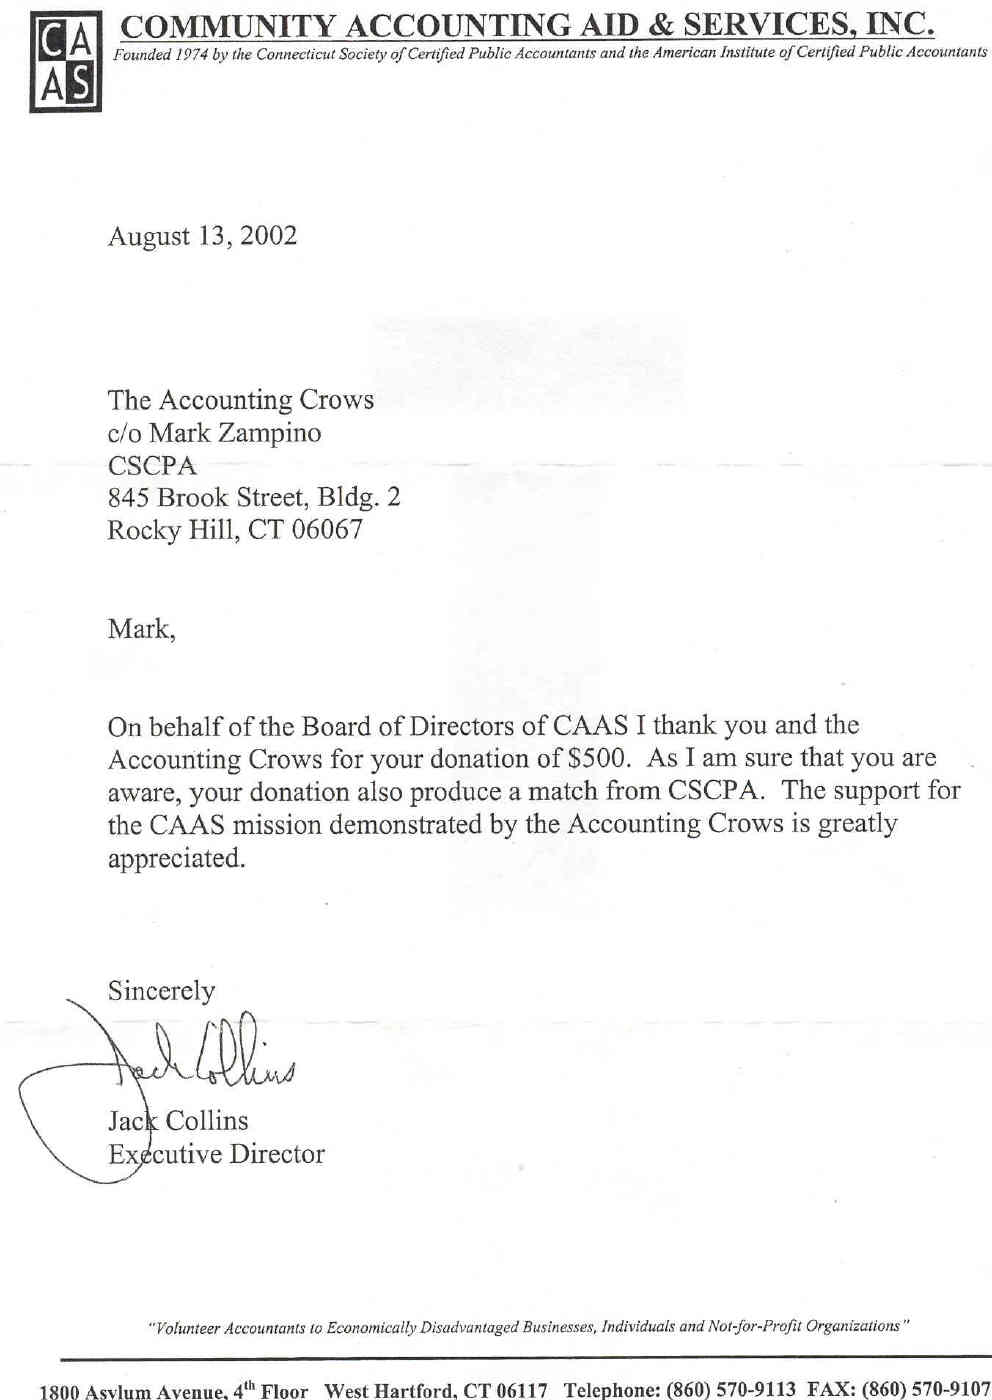 Letter from CAAS